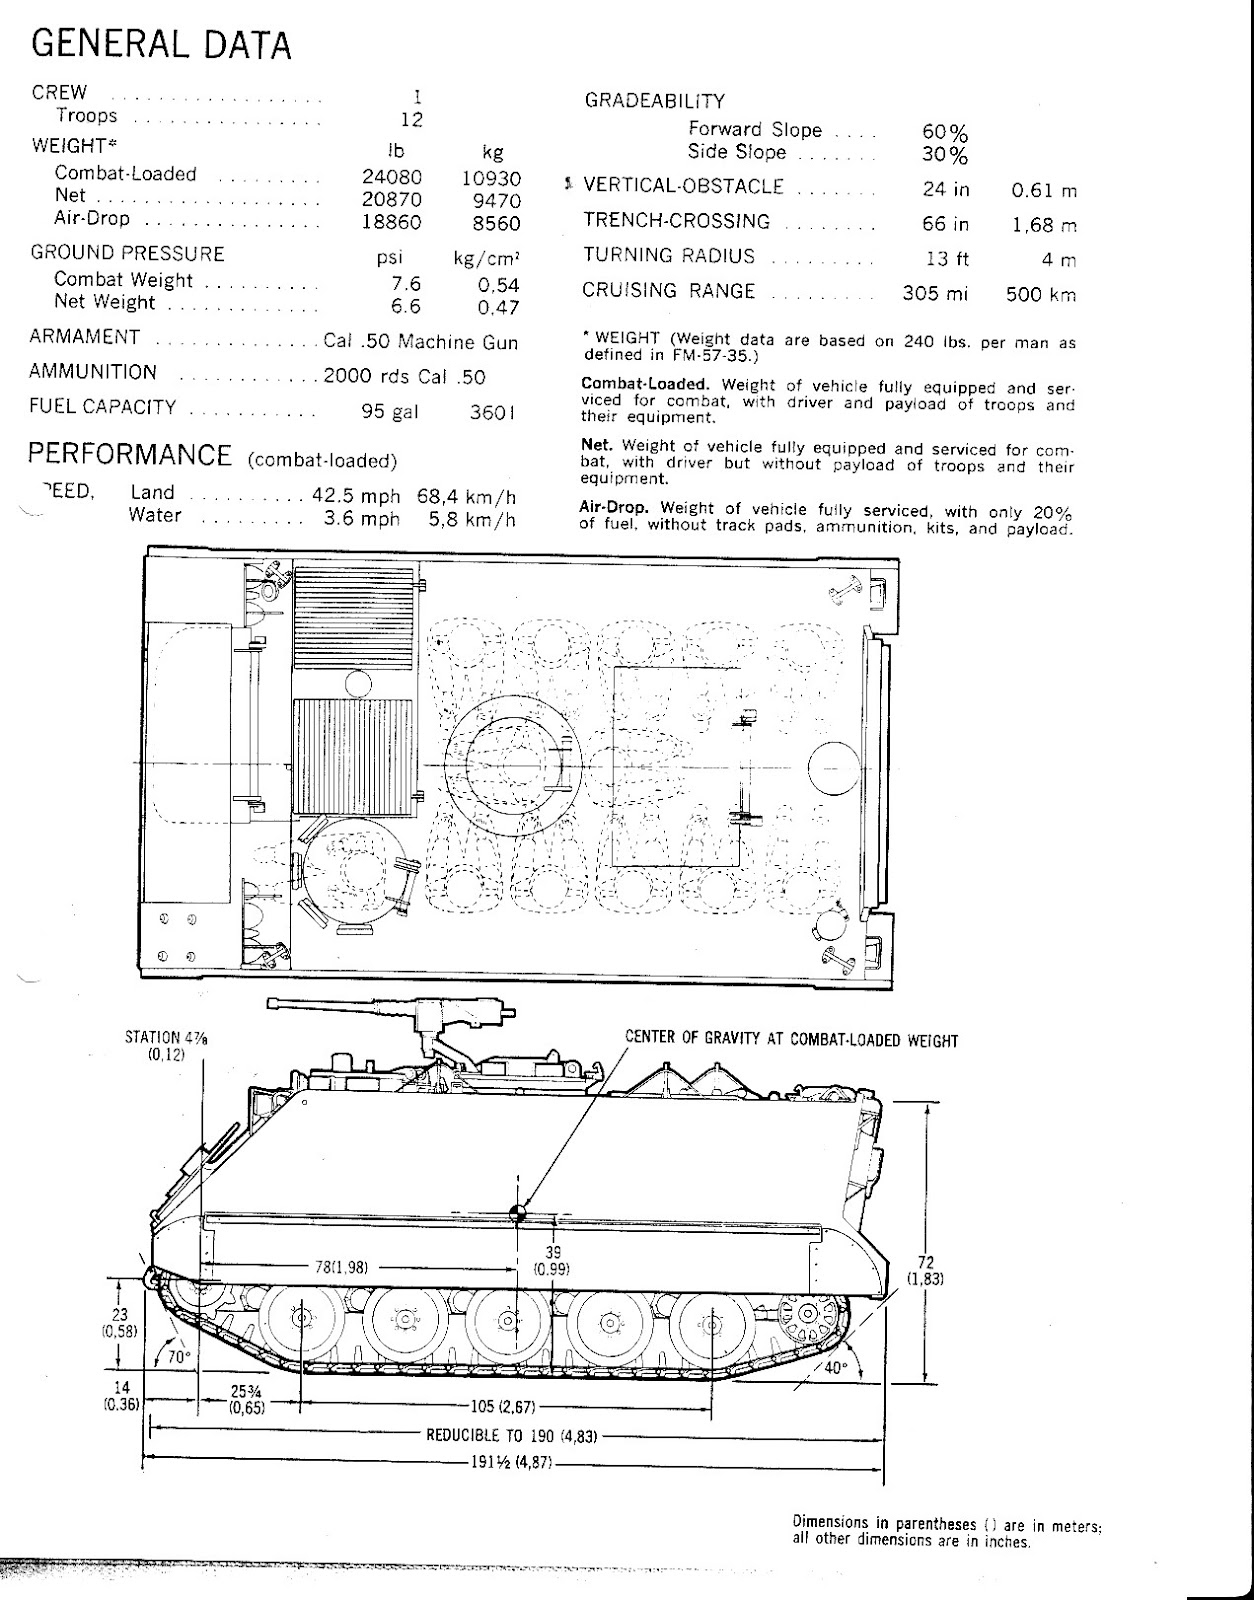 M113 apc 1961 original fmc m113 blueprint malvernweather Image collections